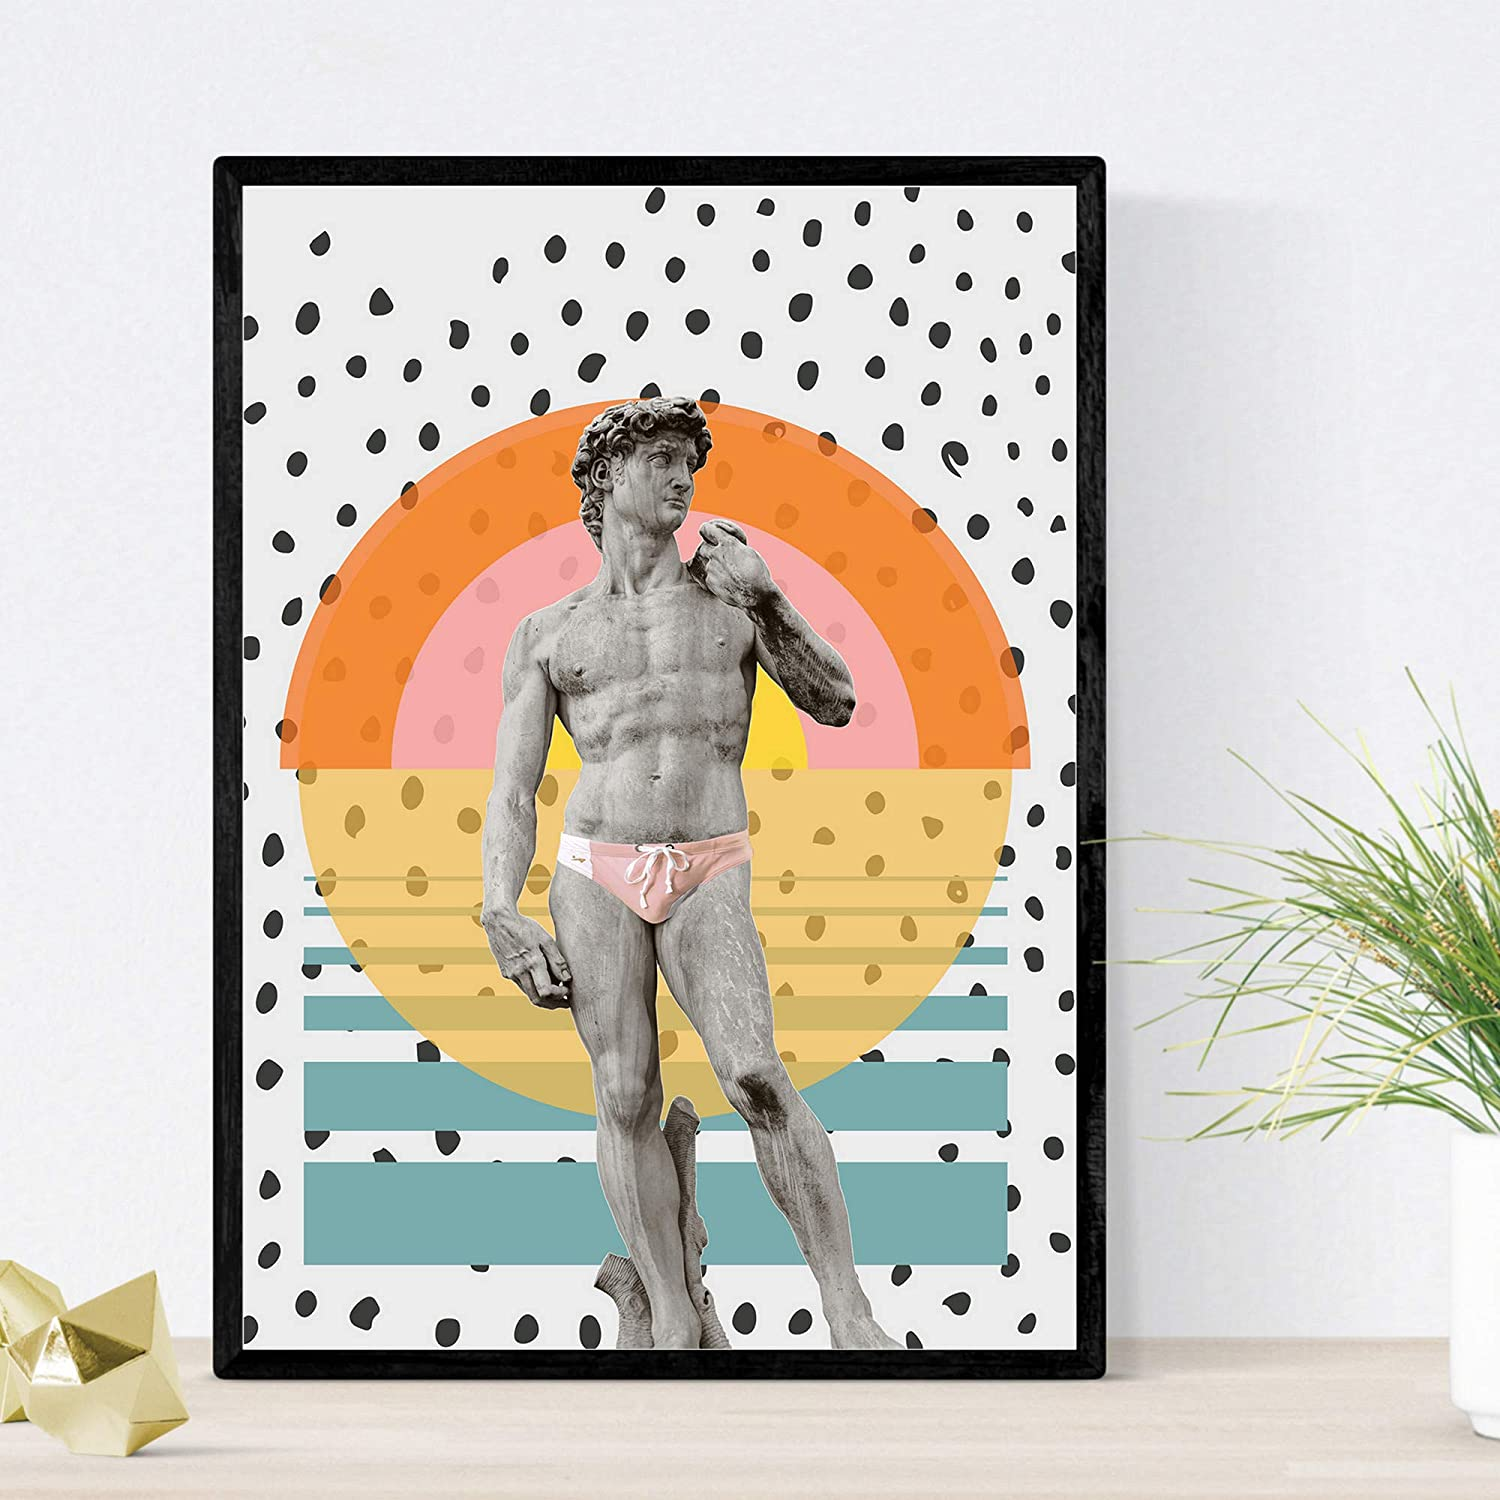 Nacnic Prints David on The Beach - Set of 1 - Unframed 11x17 inch Size - 250g Paper - Beautiful Poster Painting for Home Office Living Room